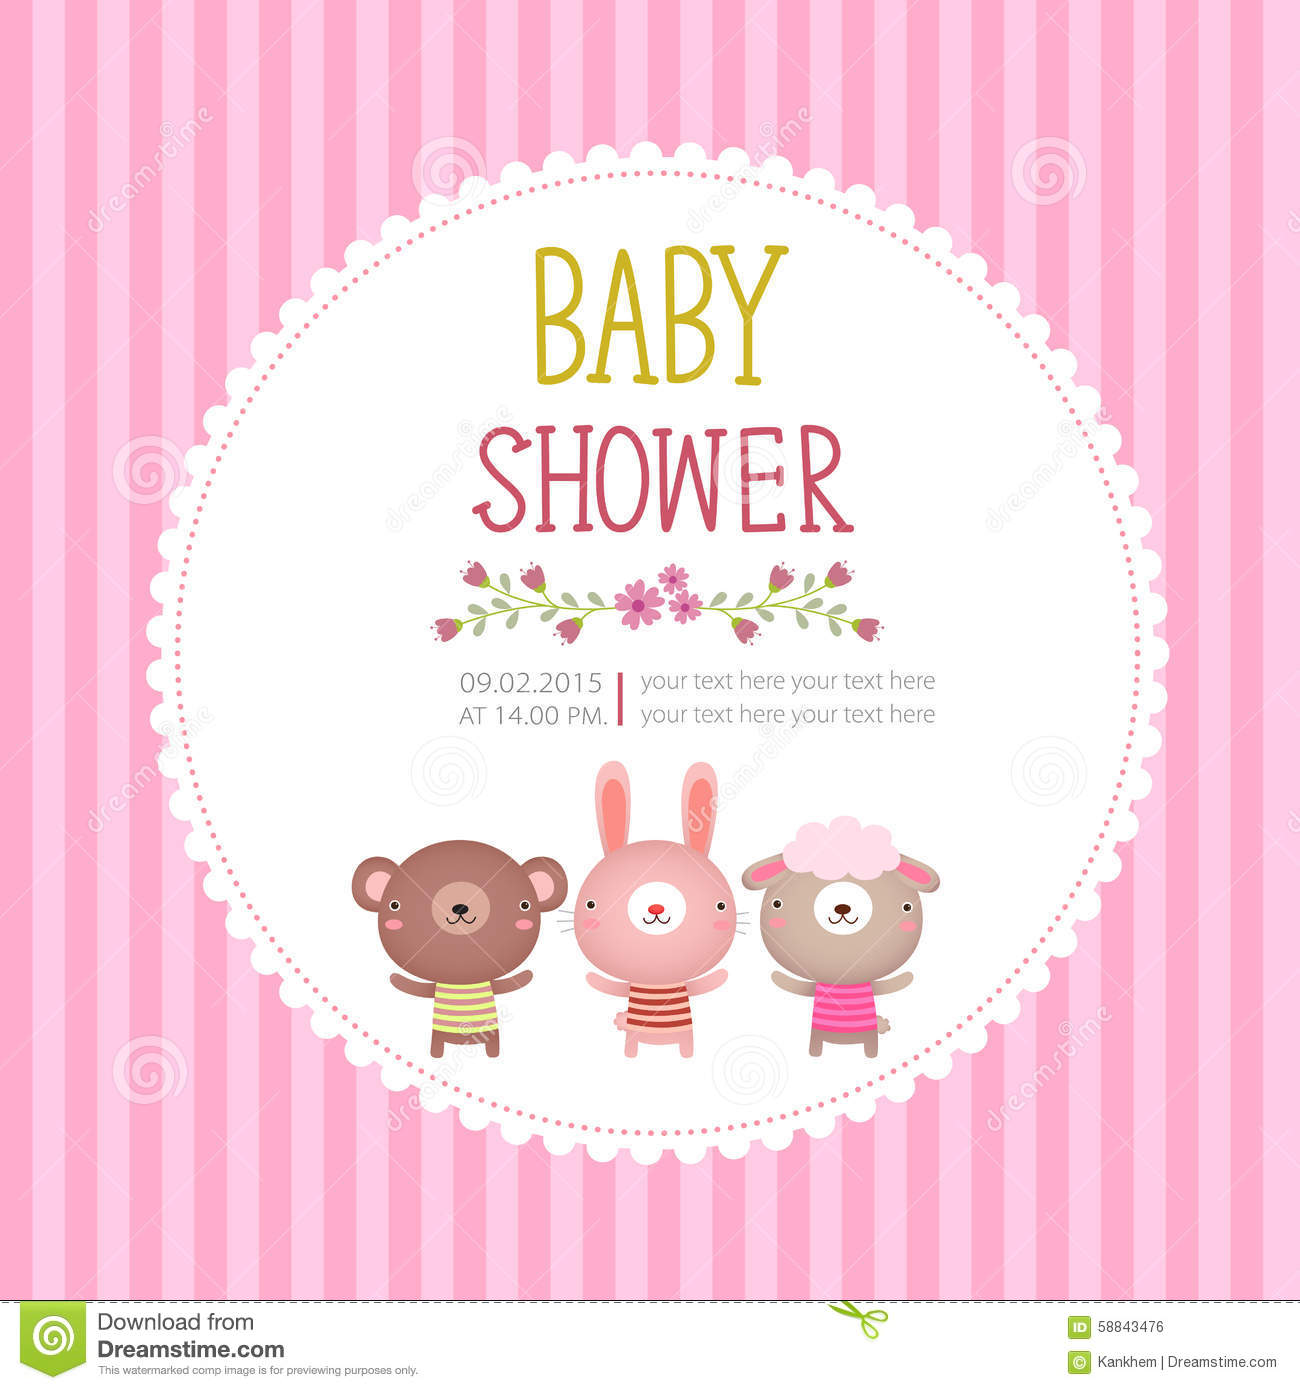 Baby shower invitation card template on pink background stock vector download baby shower invitation card template on pink background stock vector illustration of banner filmwisefo